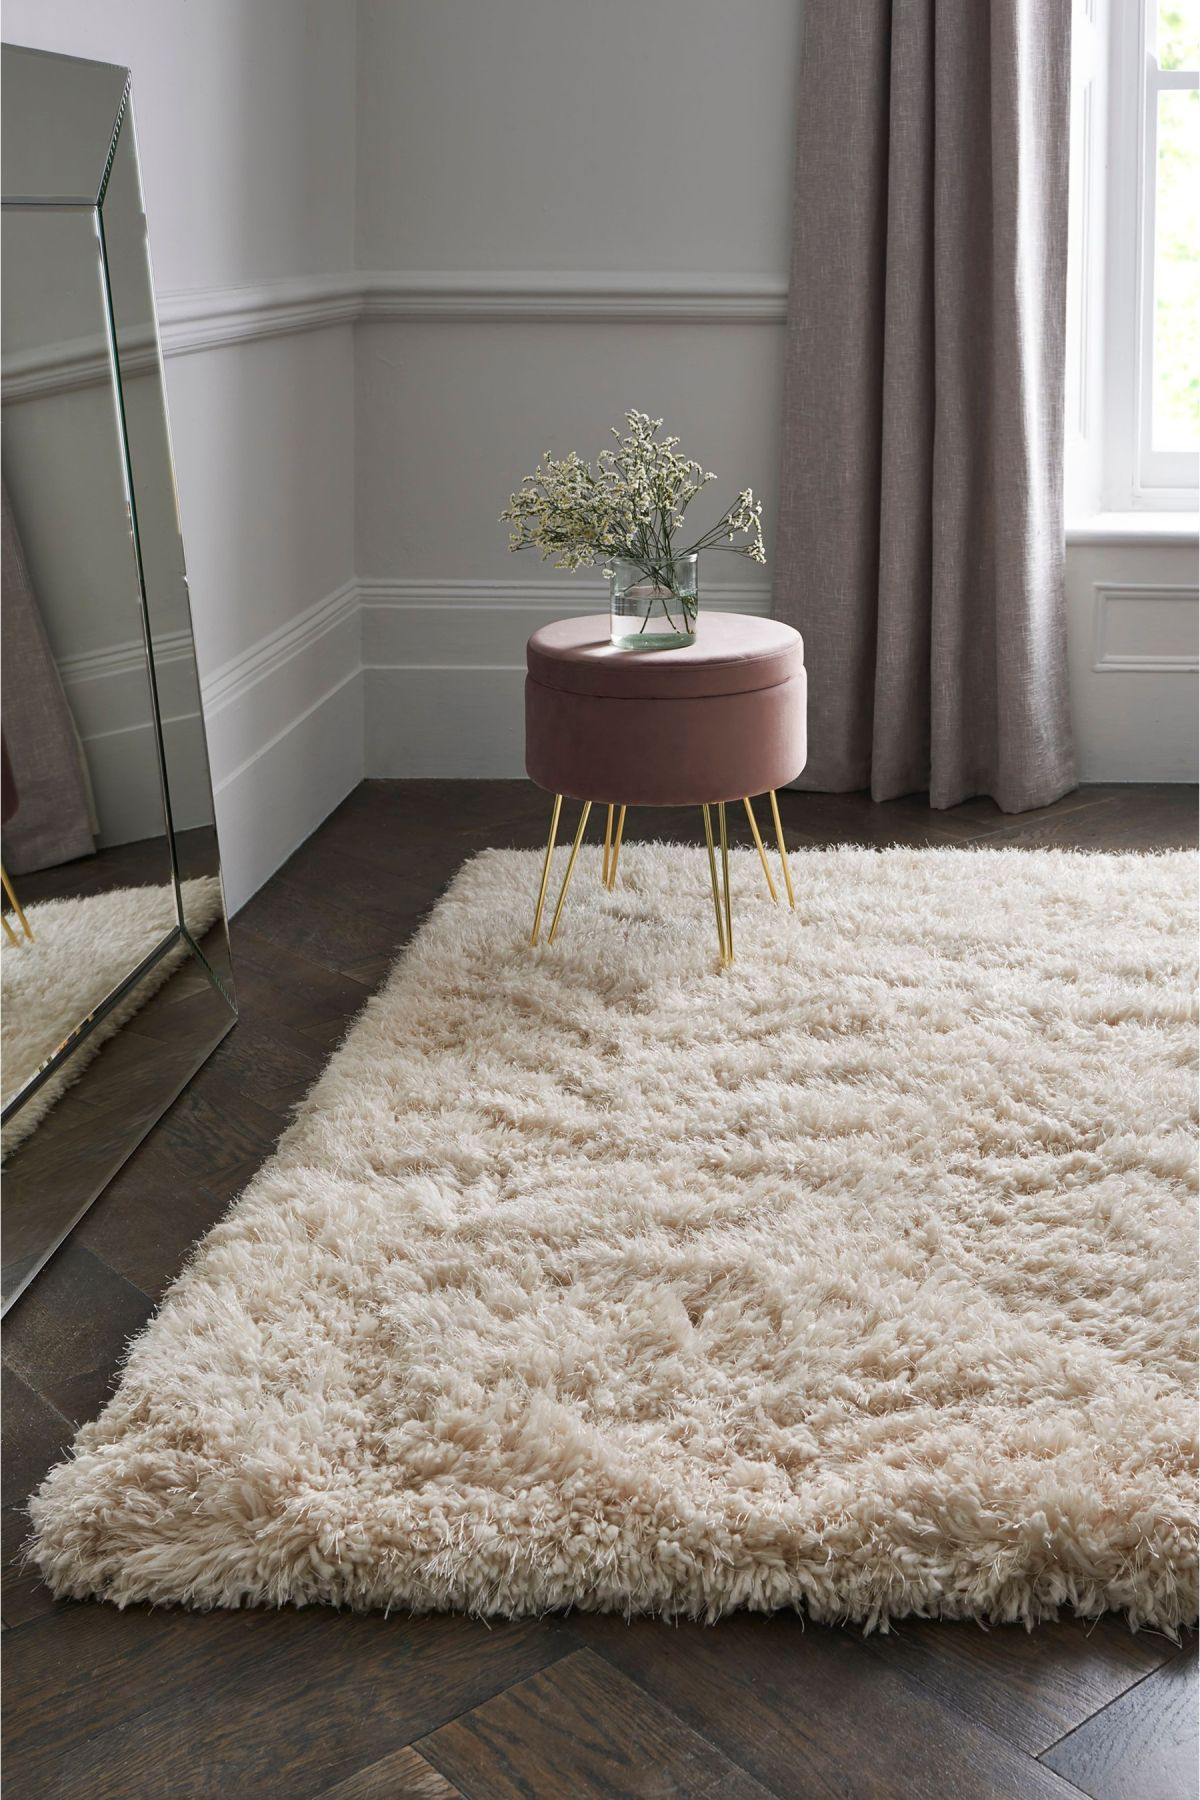 large rugs to give your rooms